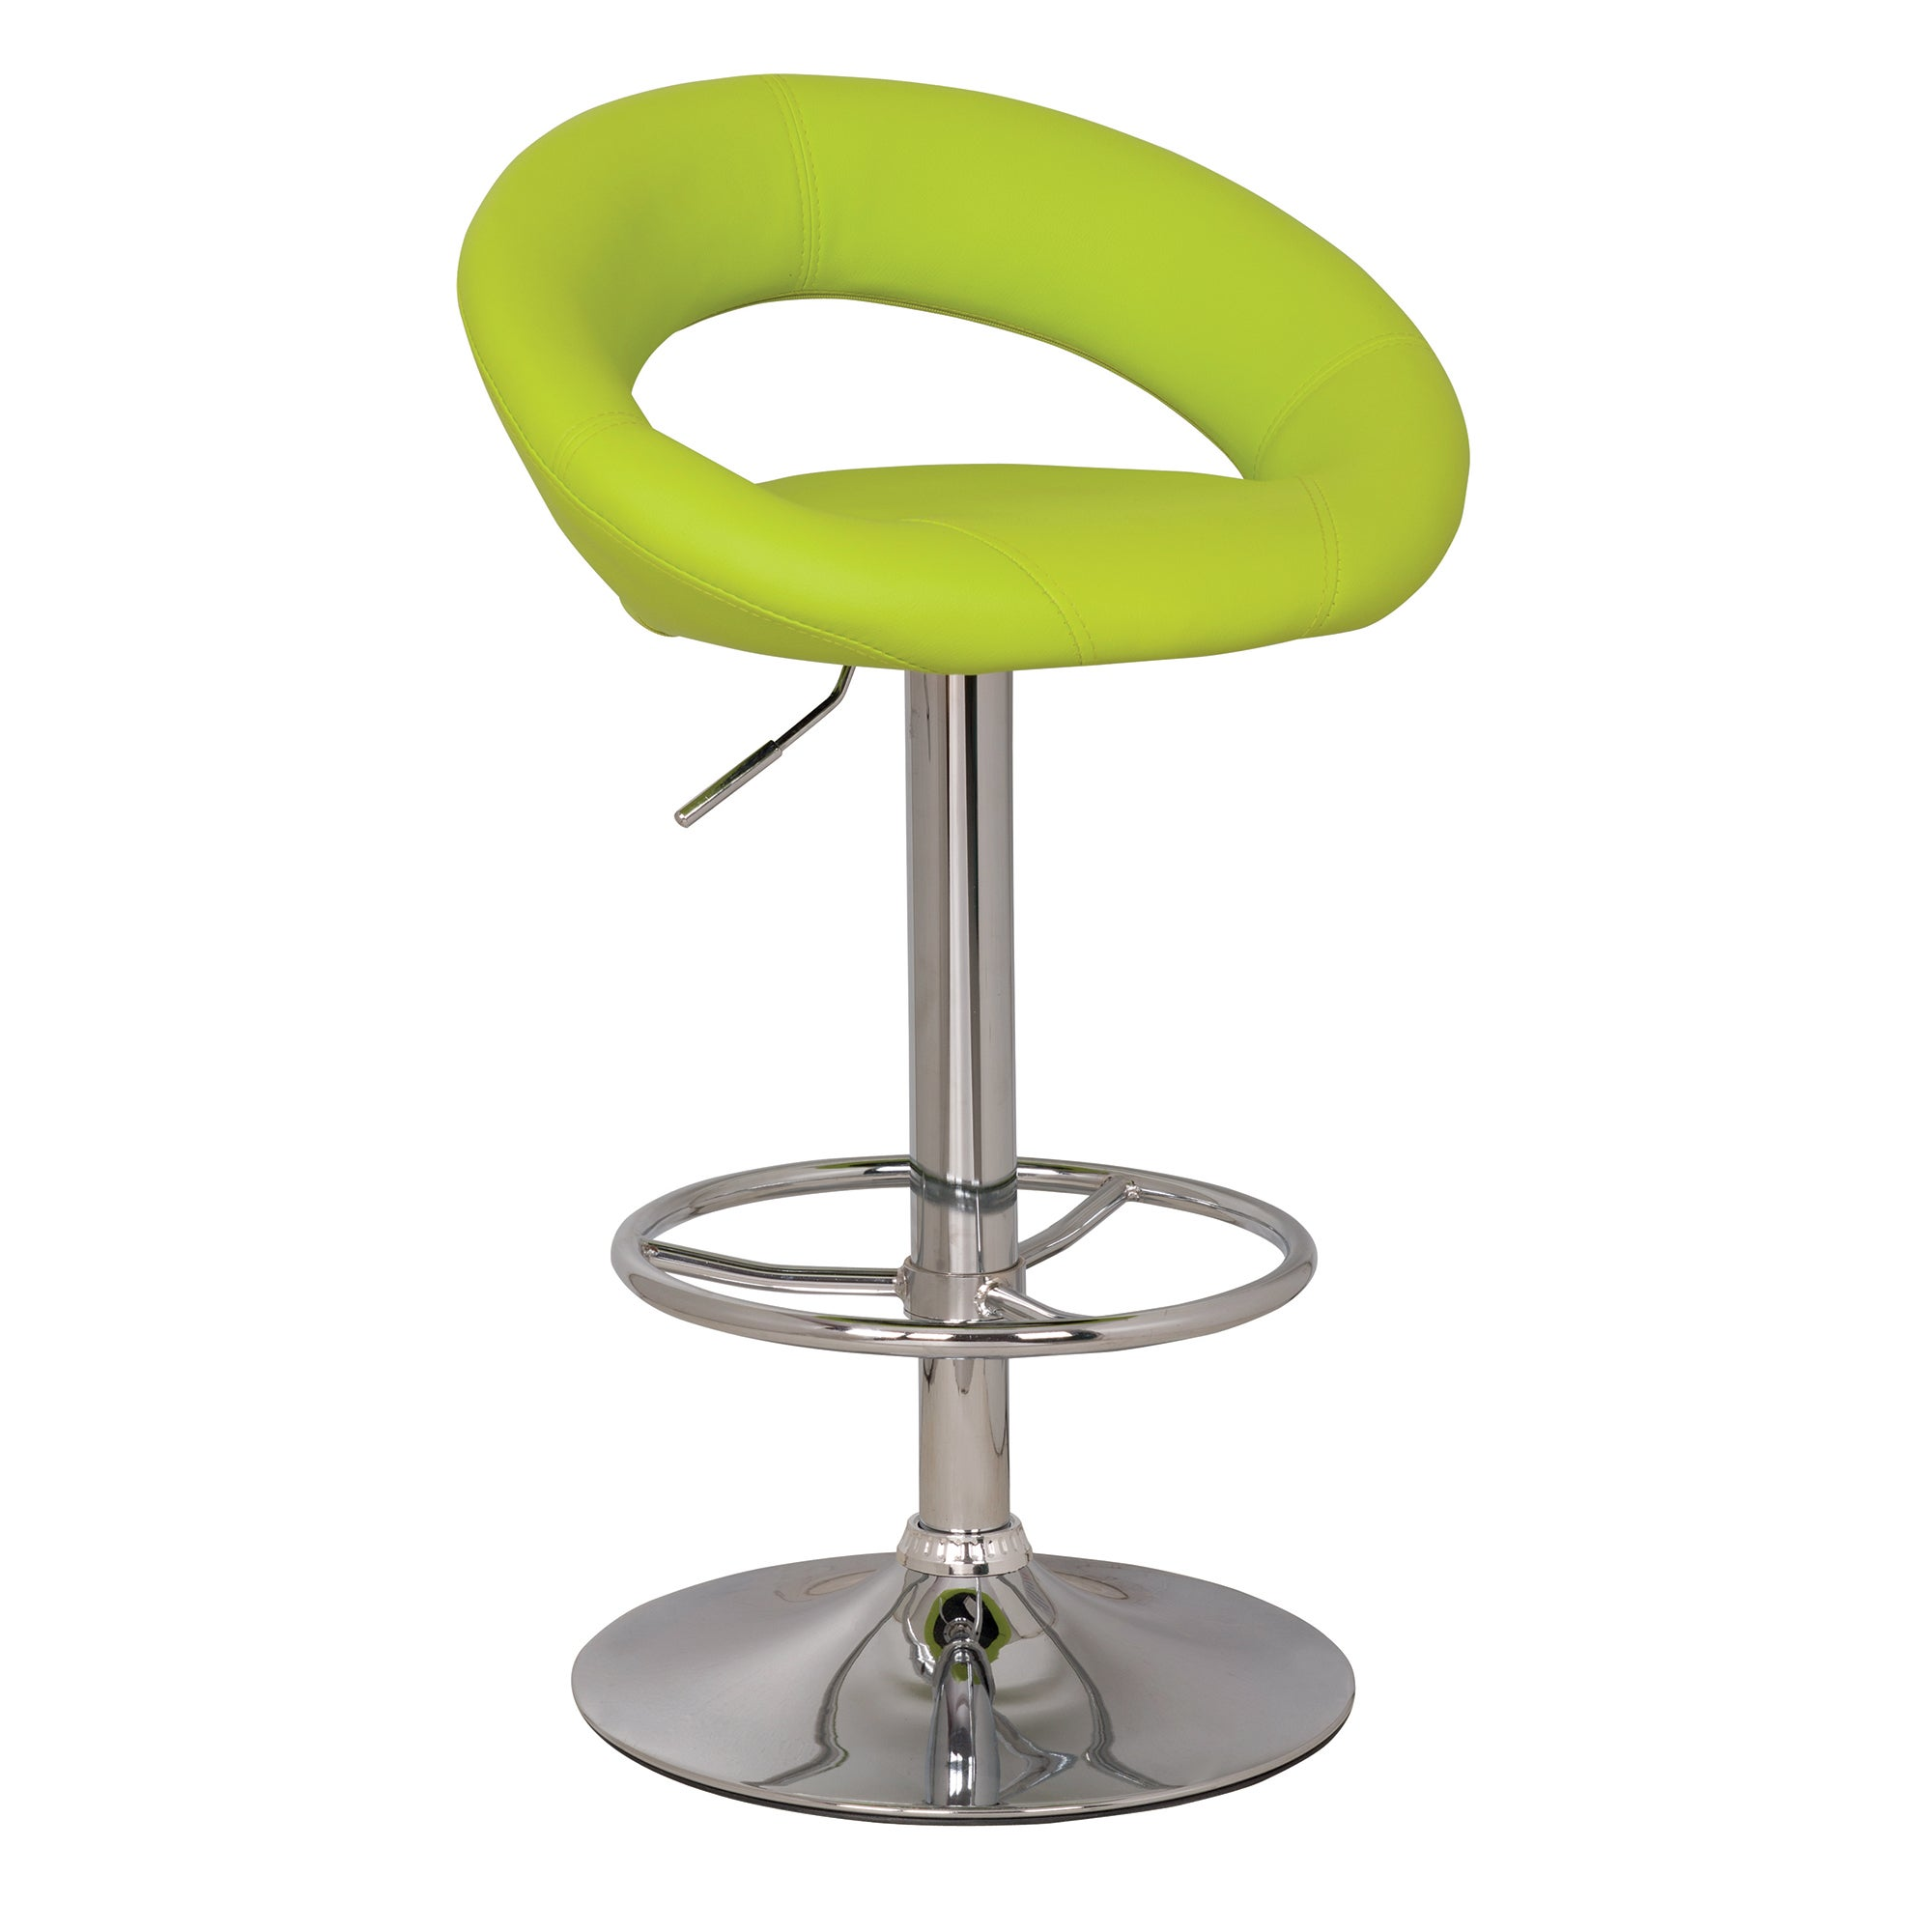 Buy Cheap Green Bar Stool Compare Chairs Prices For Best Uk Deals